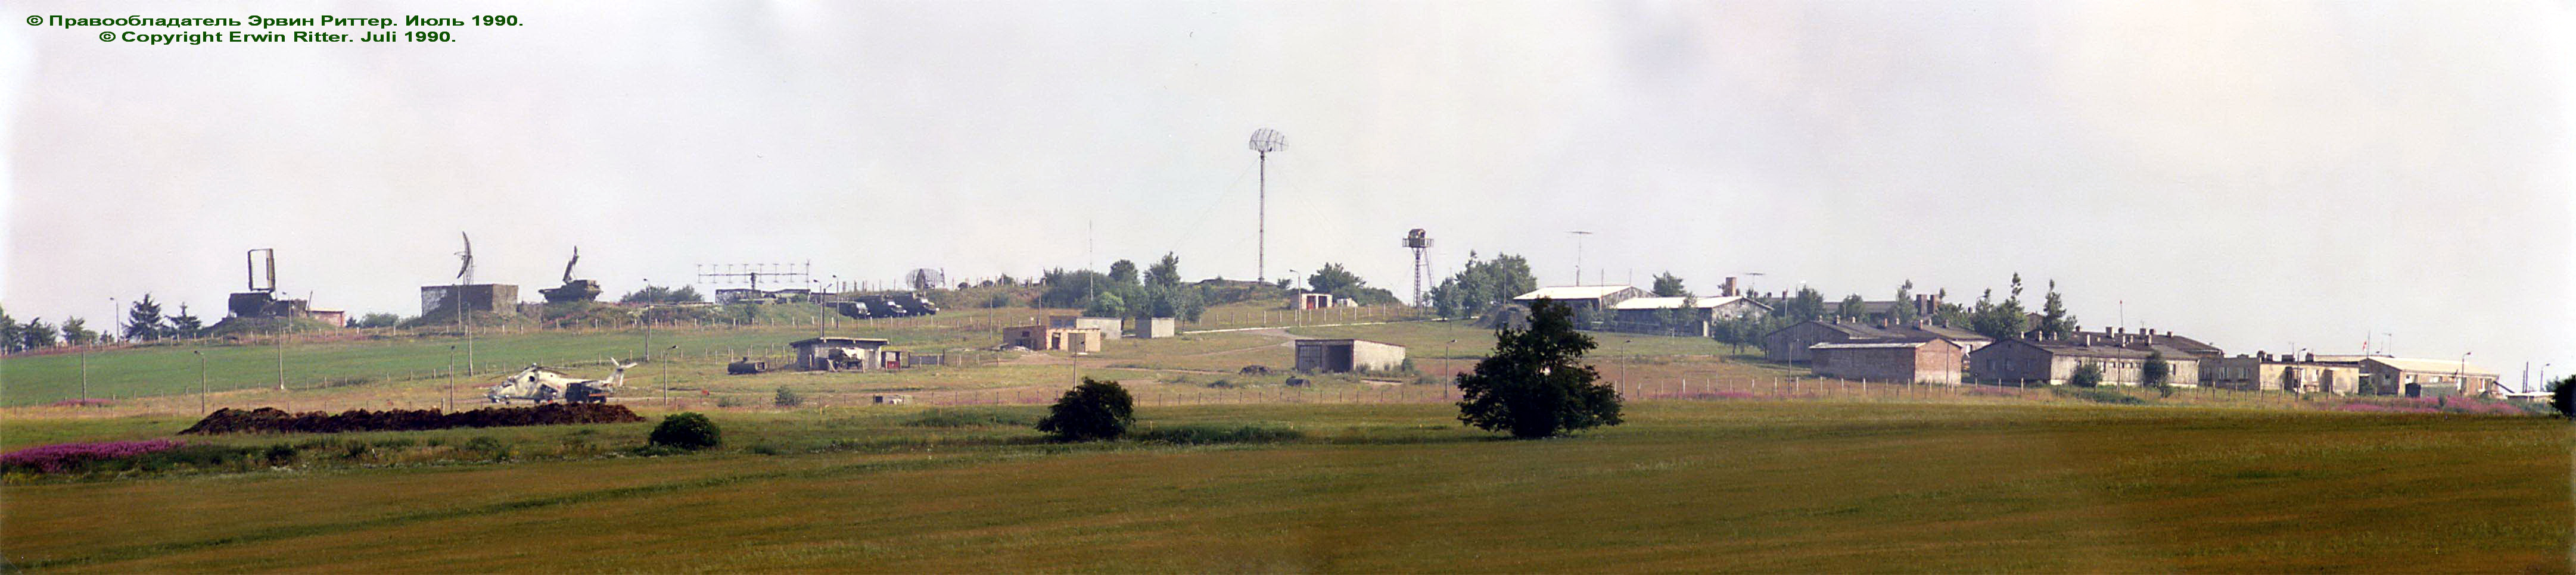 PVO radar site